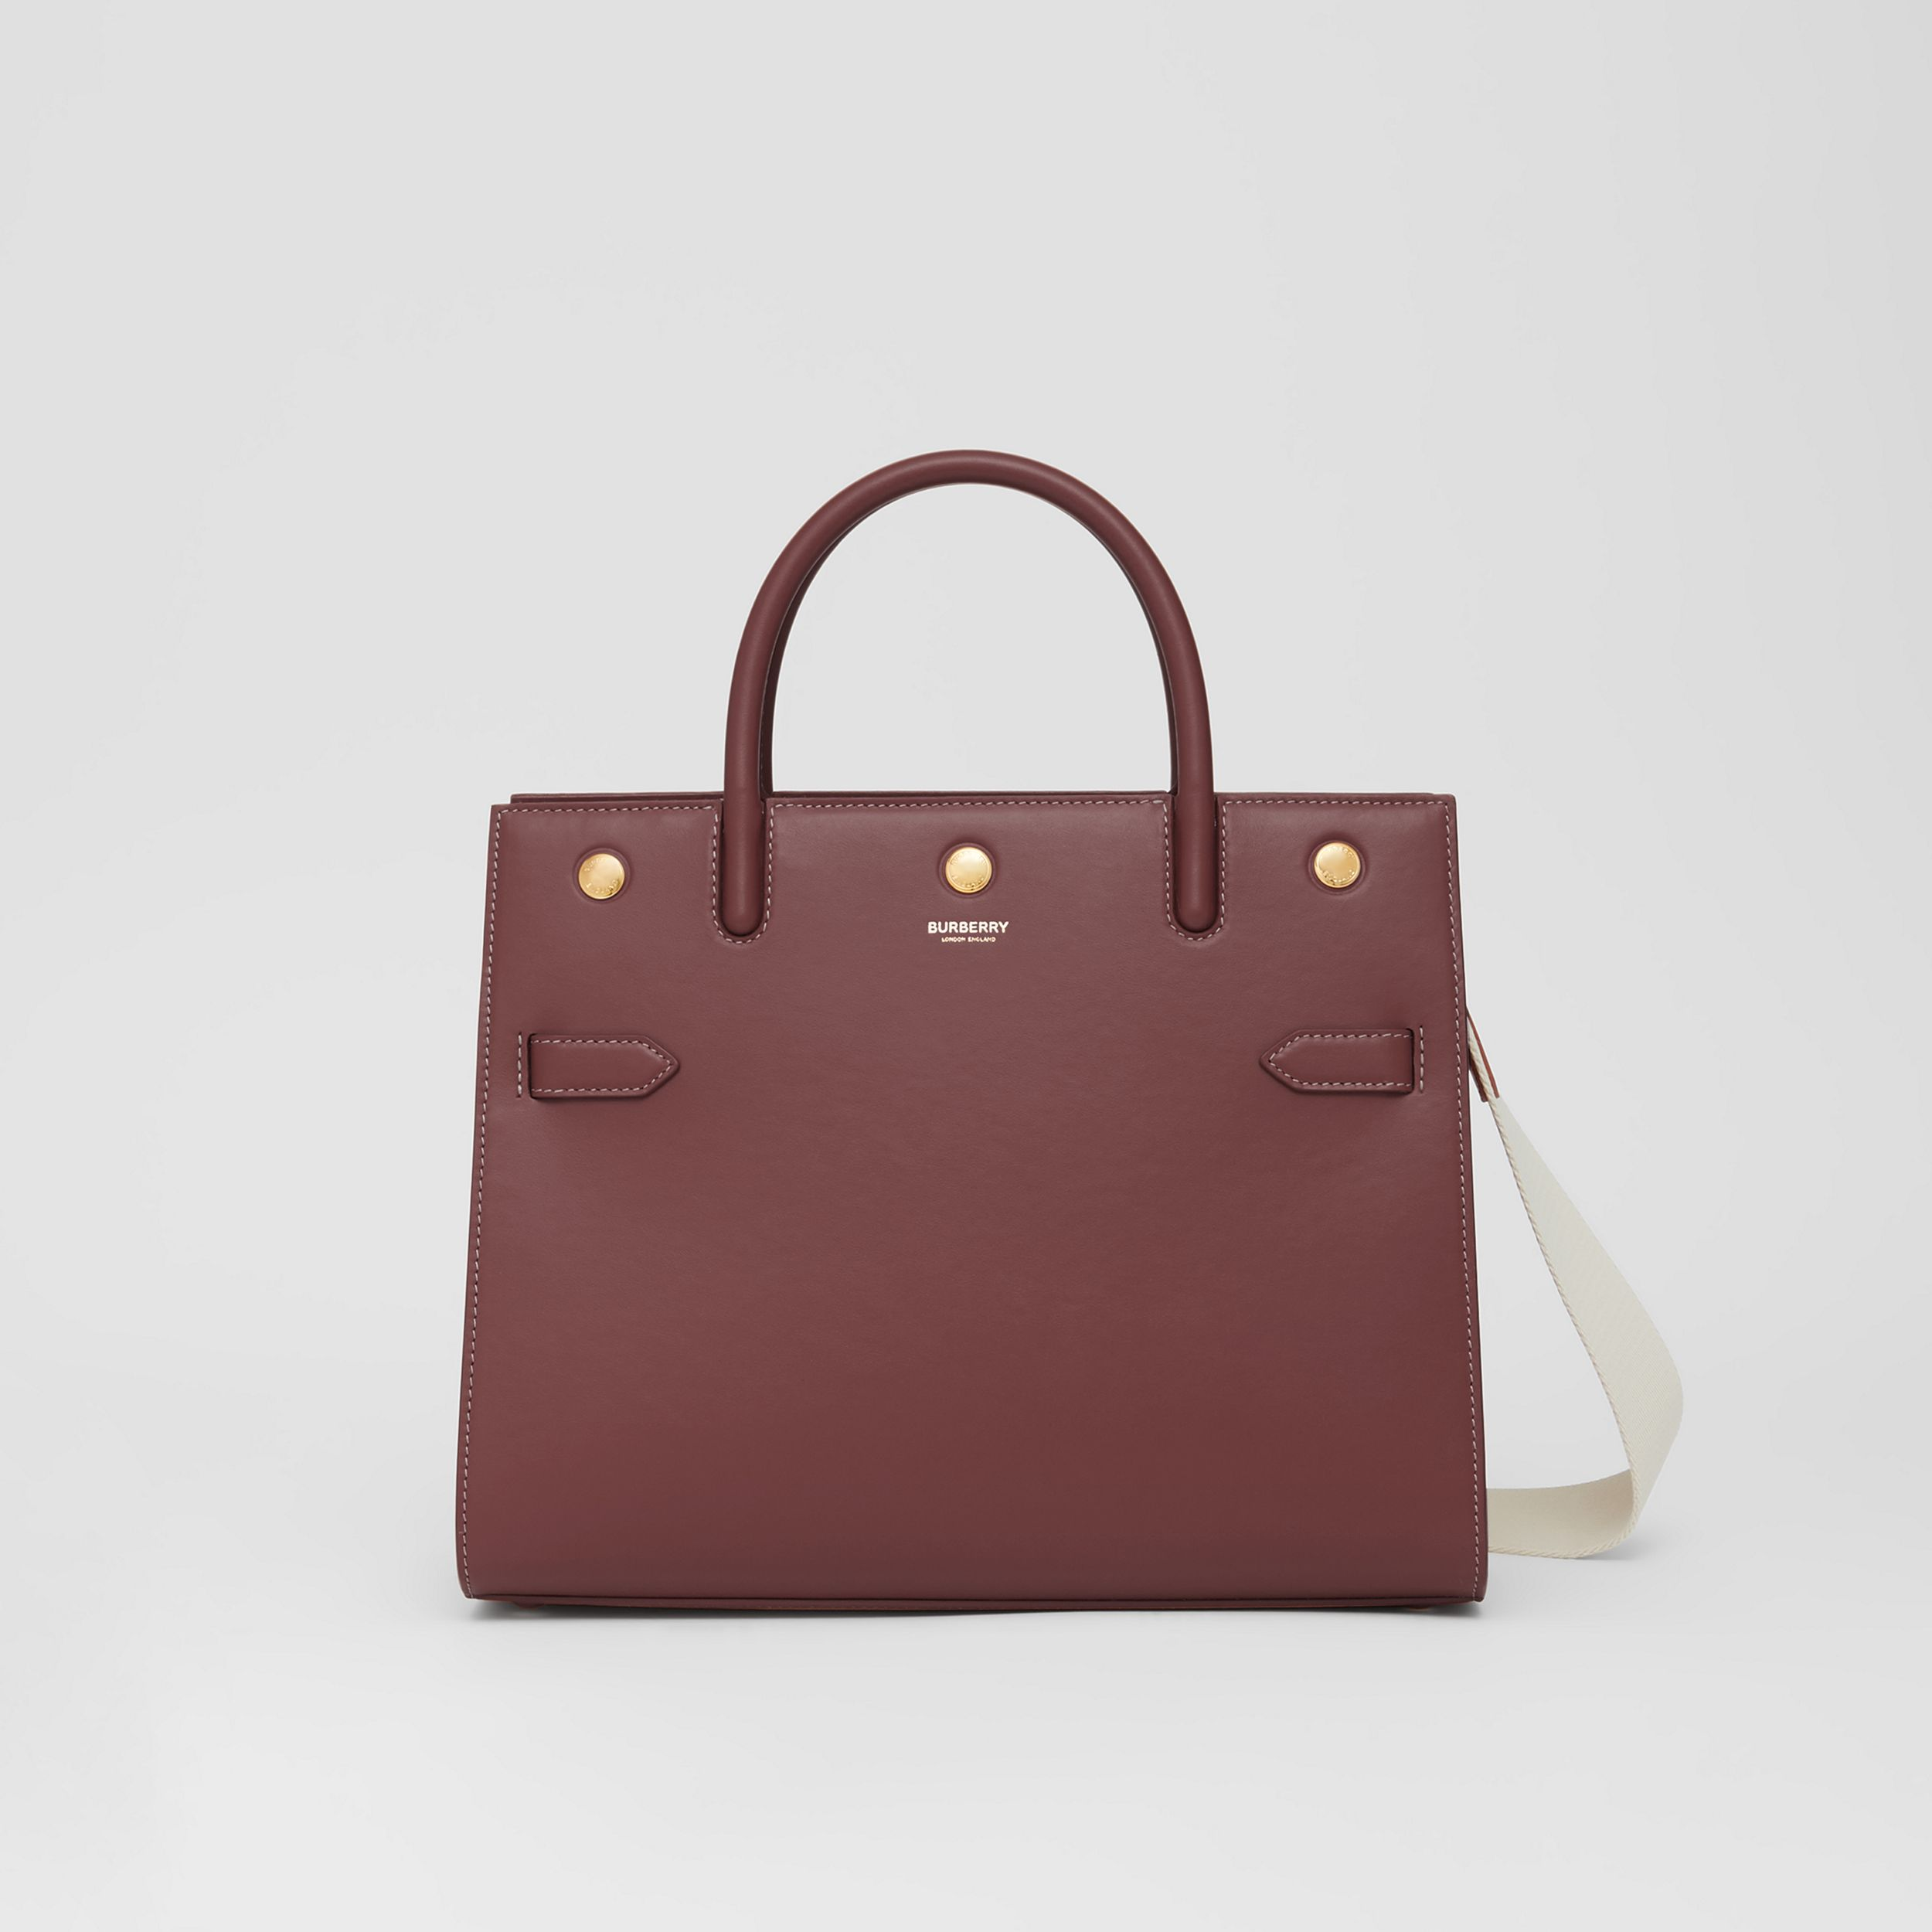 Medium Leather Two-handle Title Bag in Garnet - Women | Burberry - 1